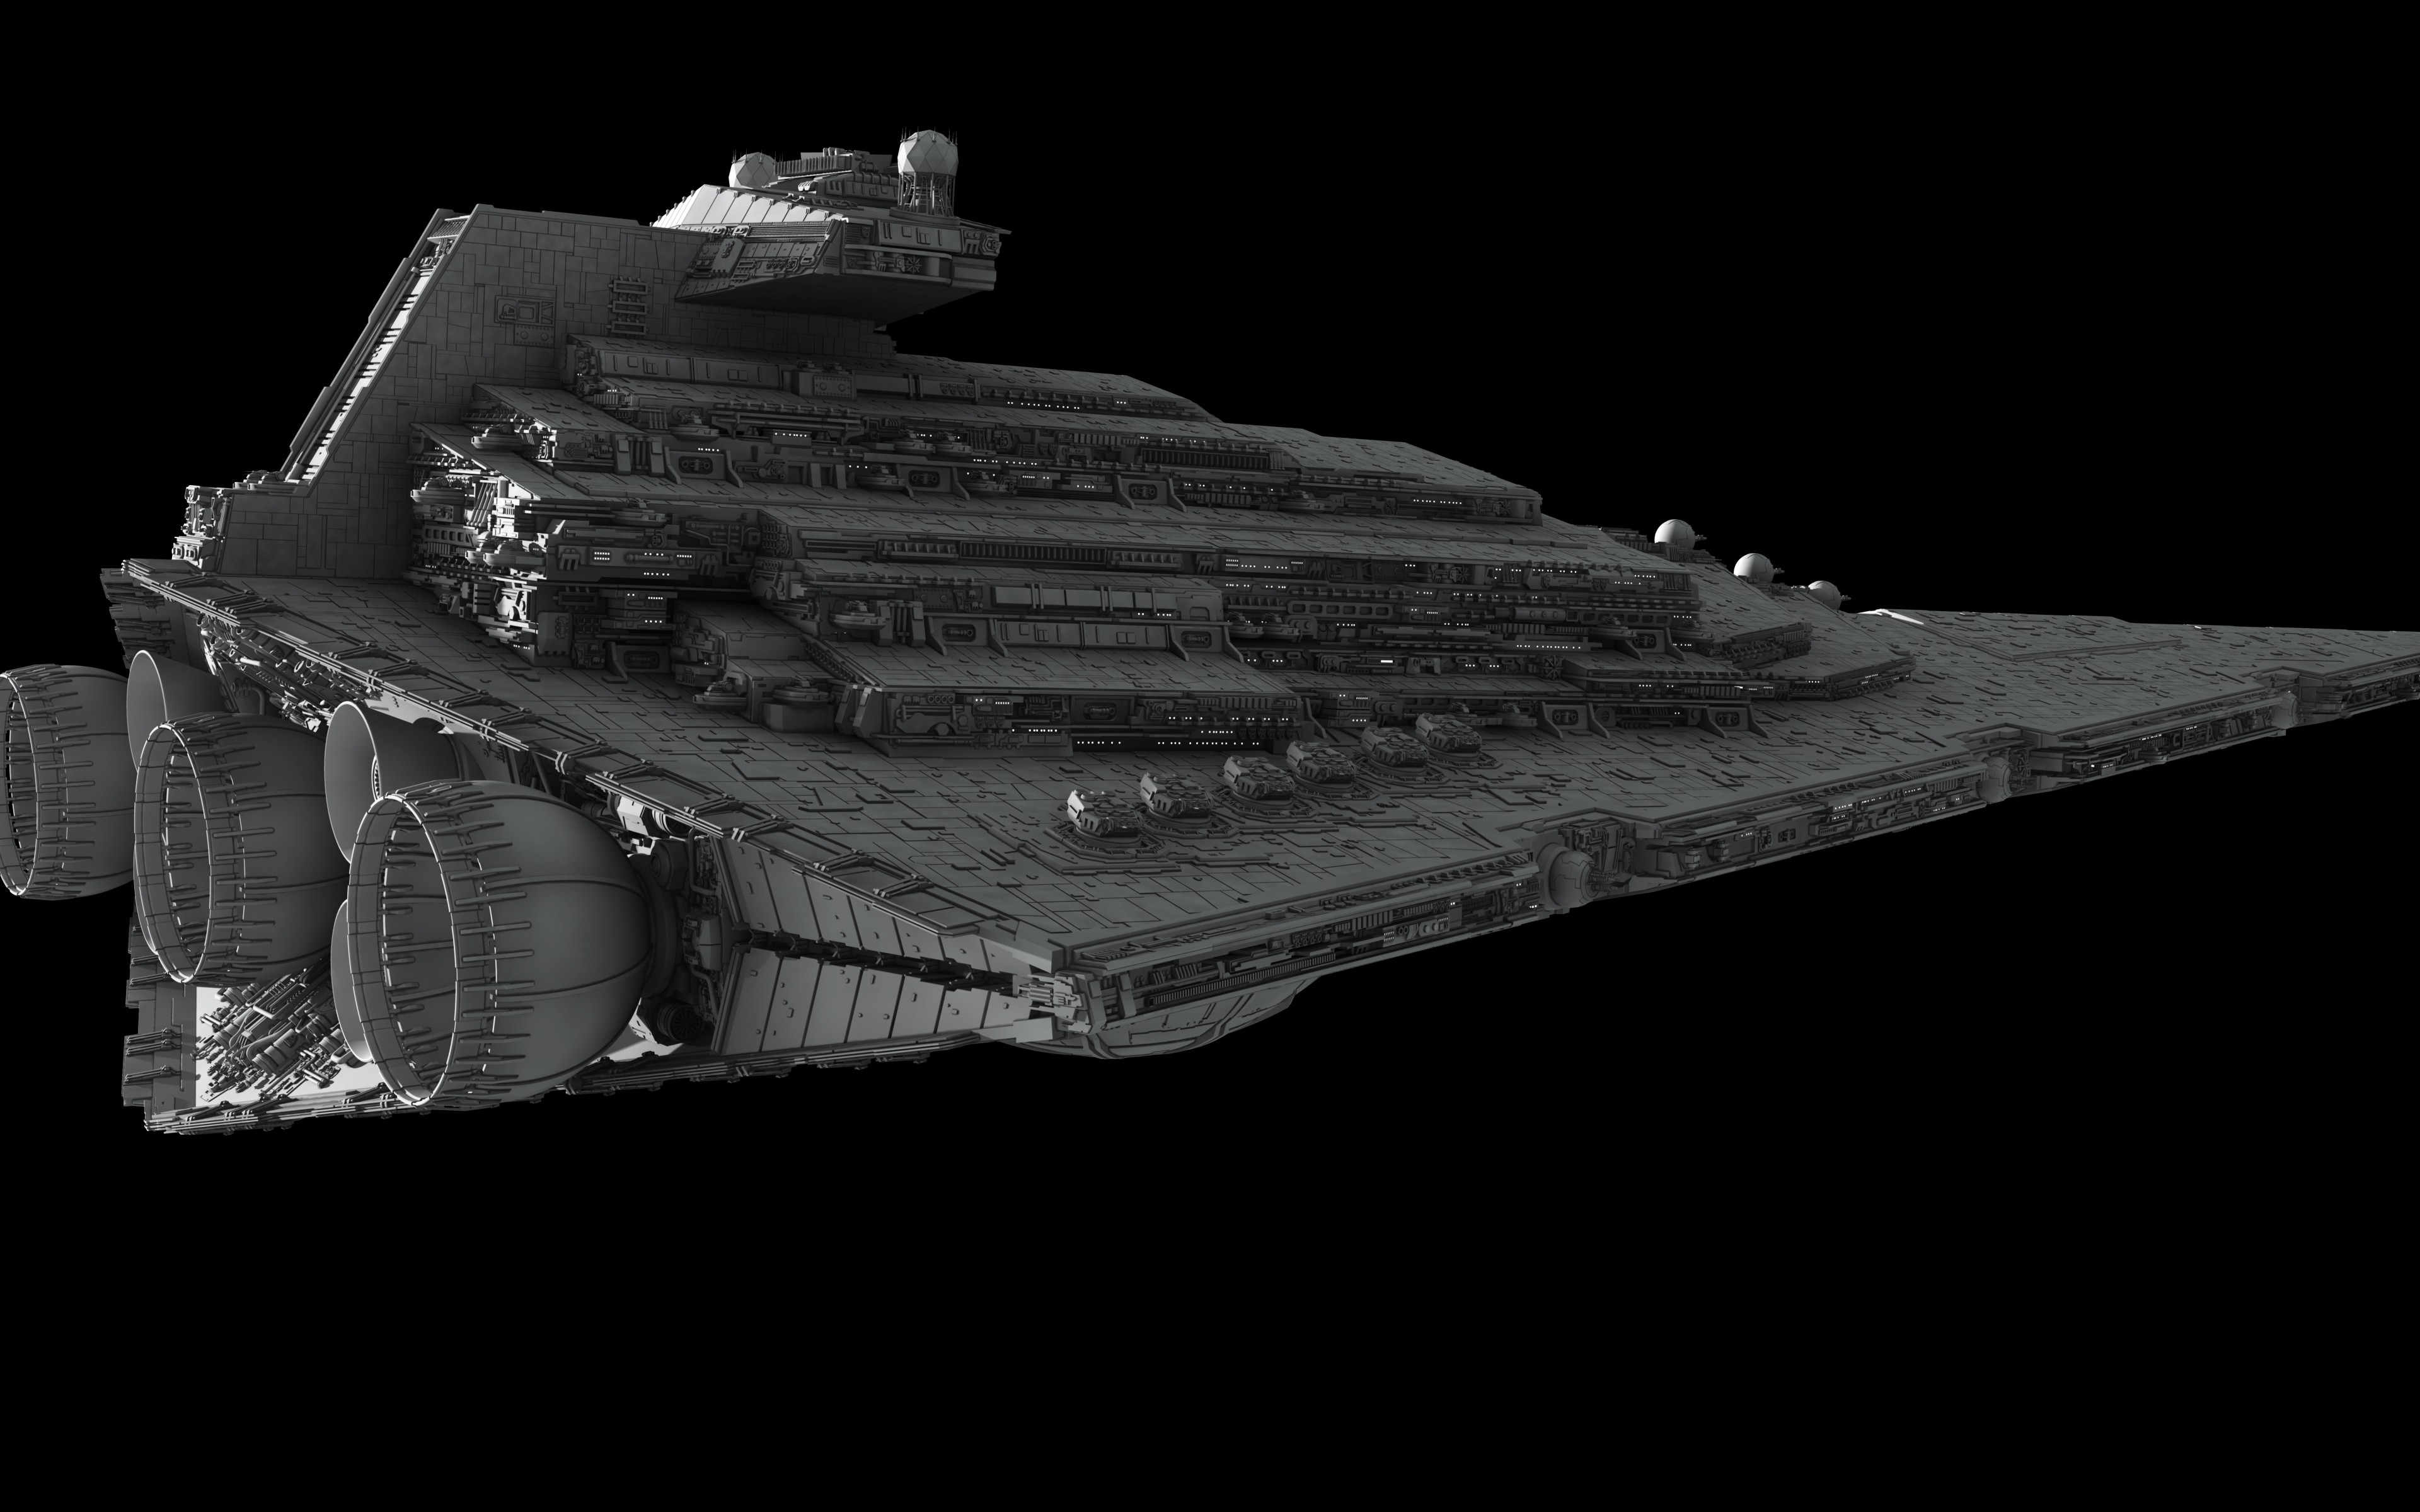 General 3840x2400 Star Wars Star Destroyer Imperial Forces render spaceship science fiction 3D digital art fractalsponge